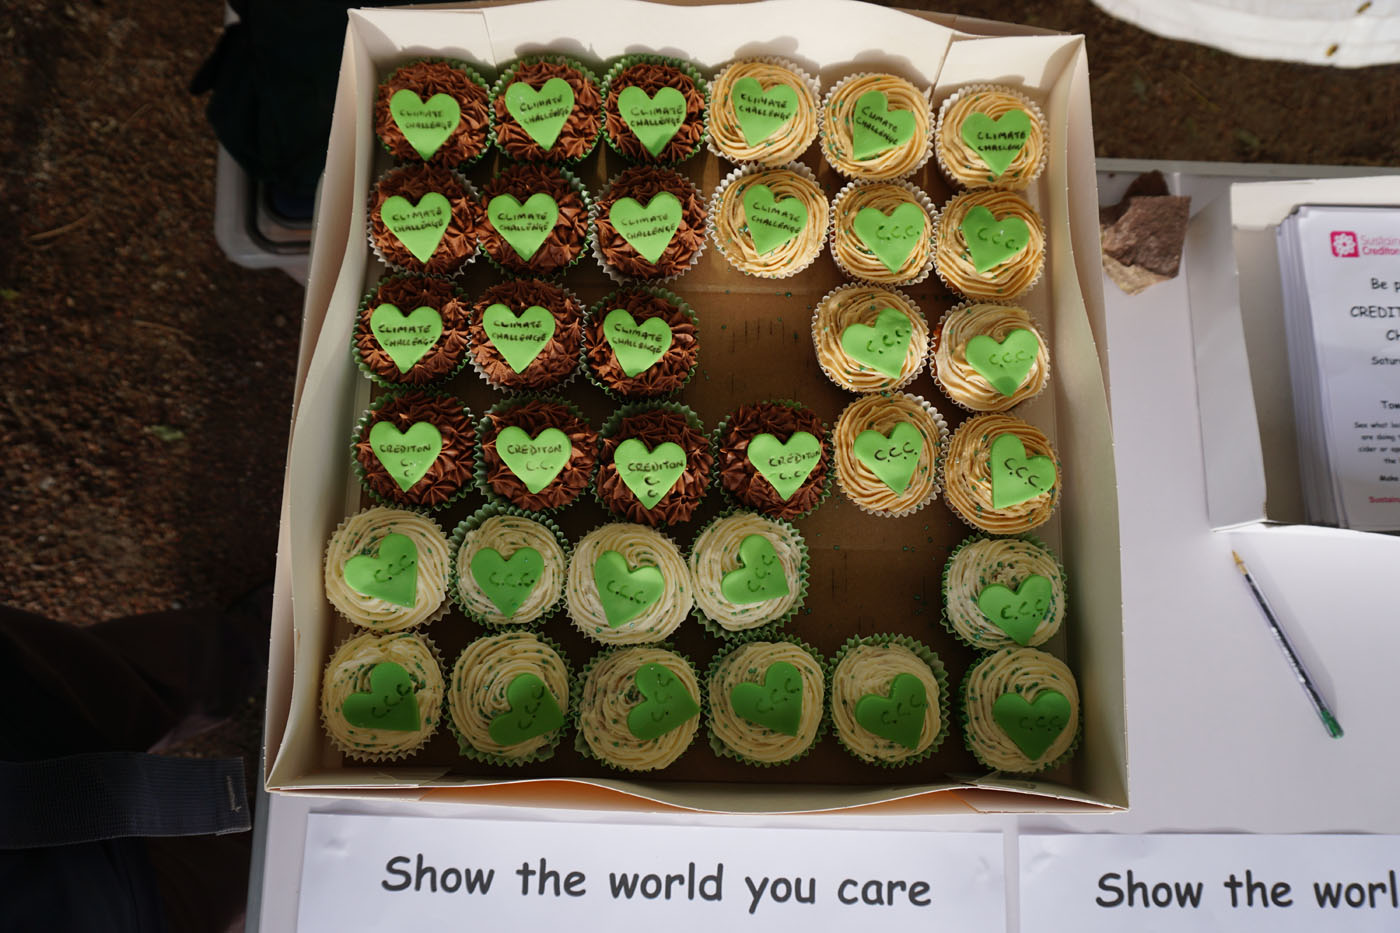 Photograph of a box of cakes decorated with green hearts